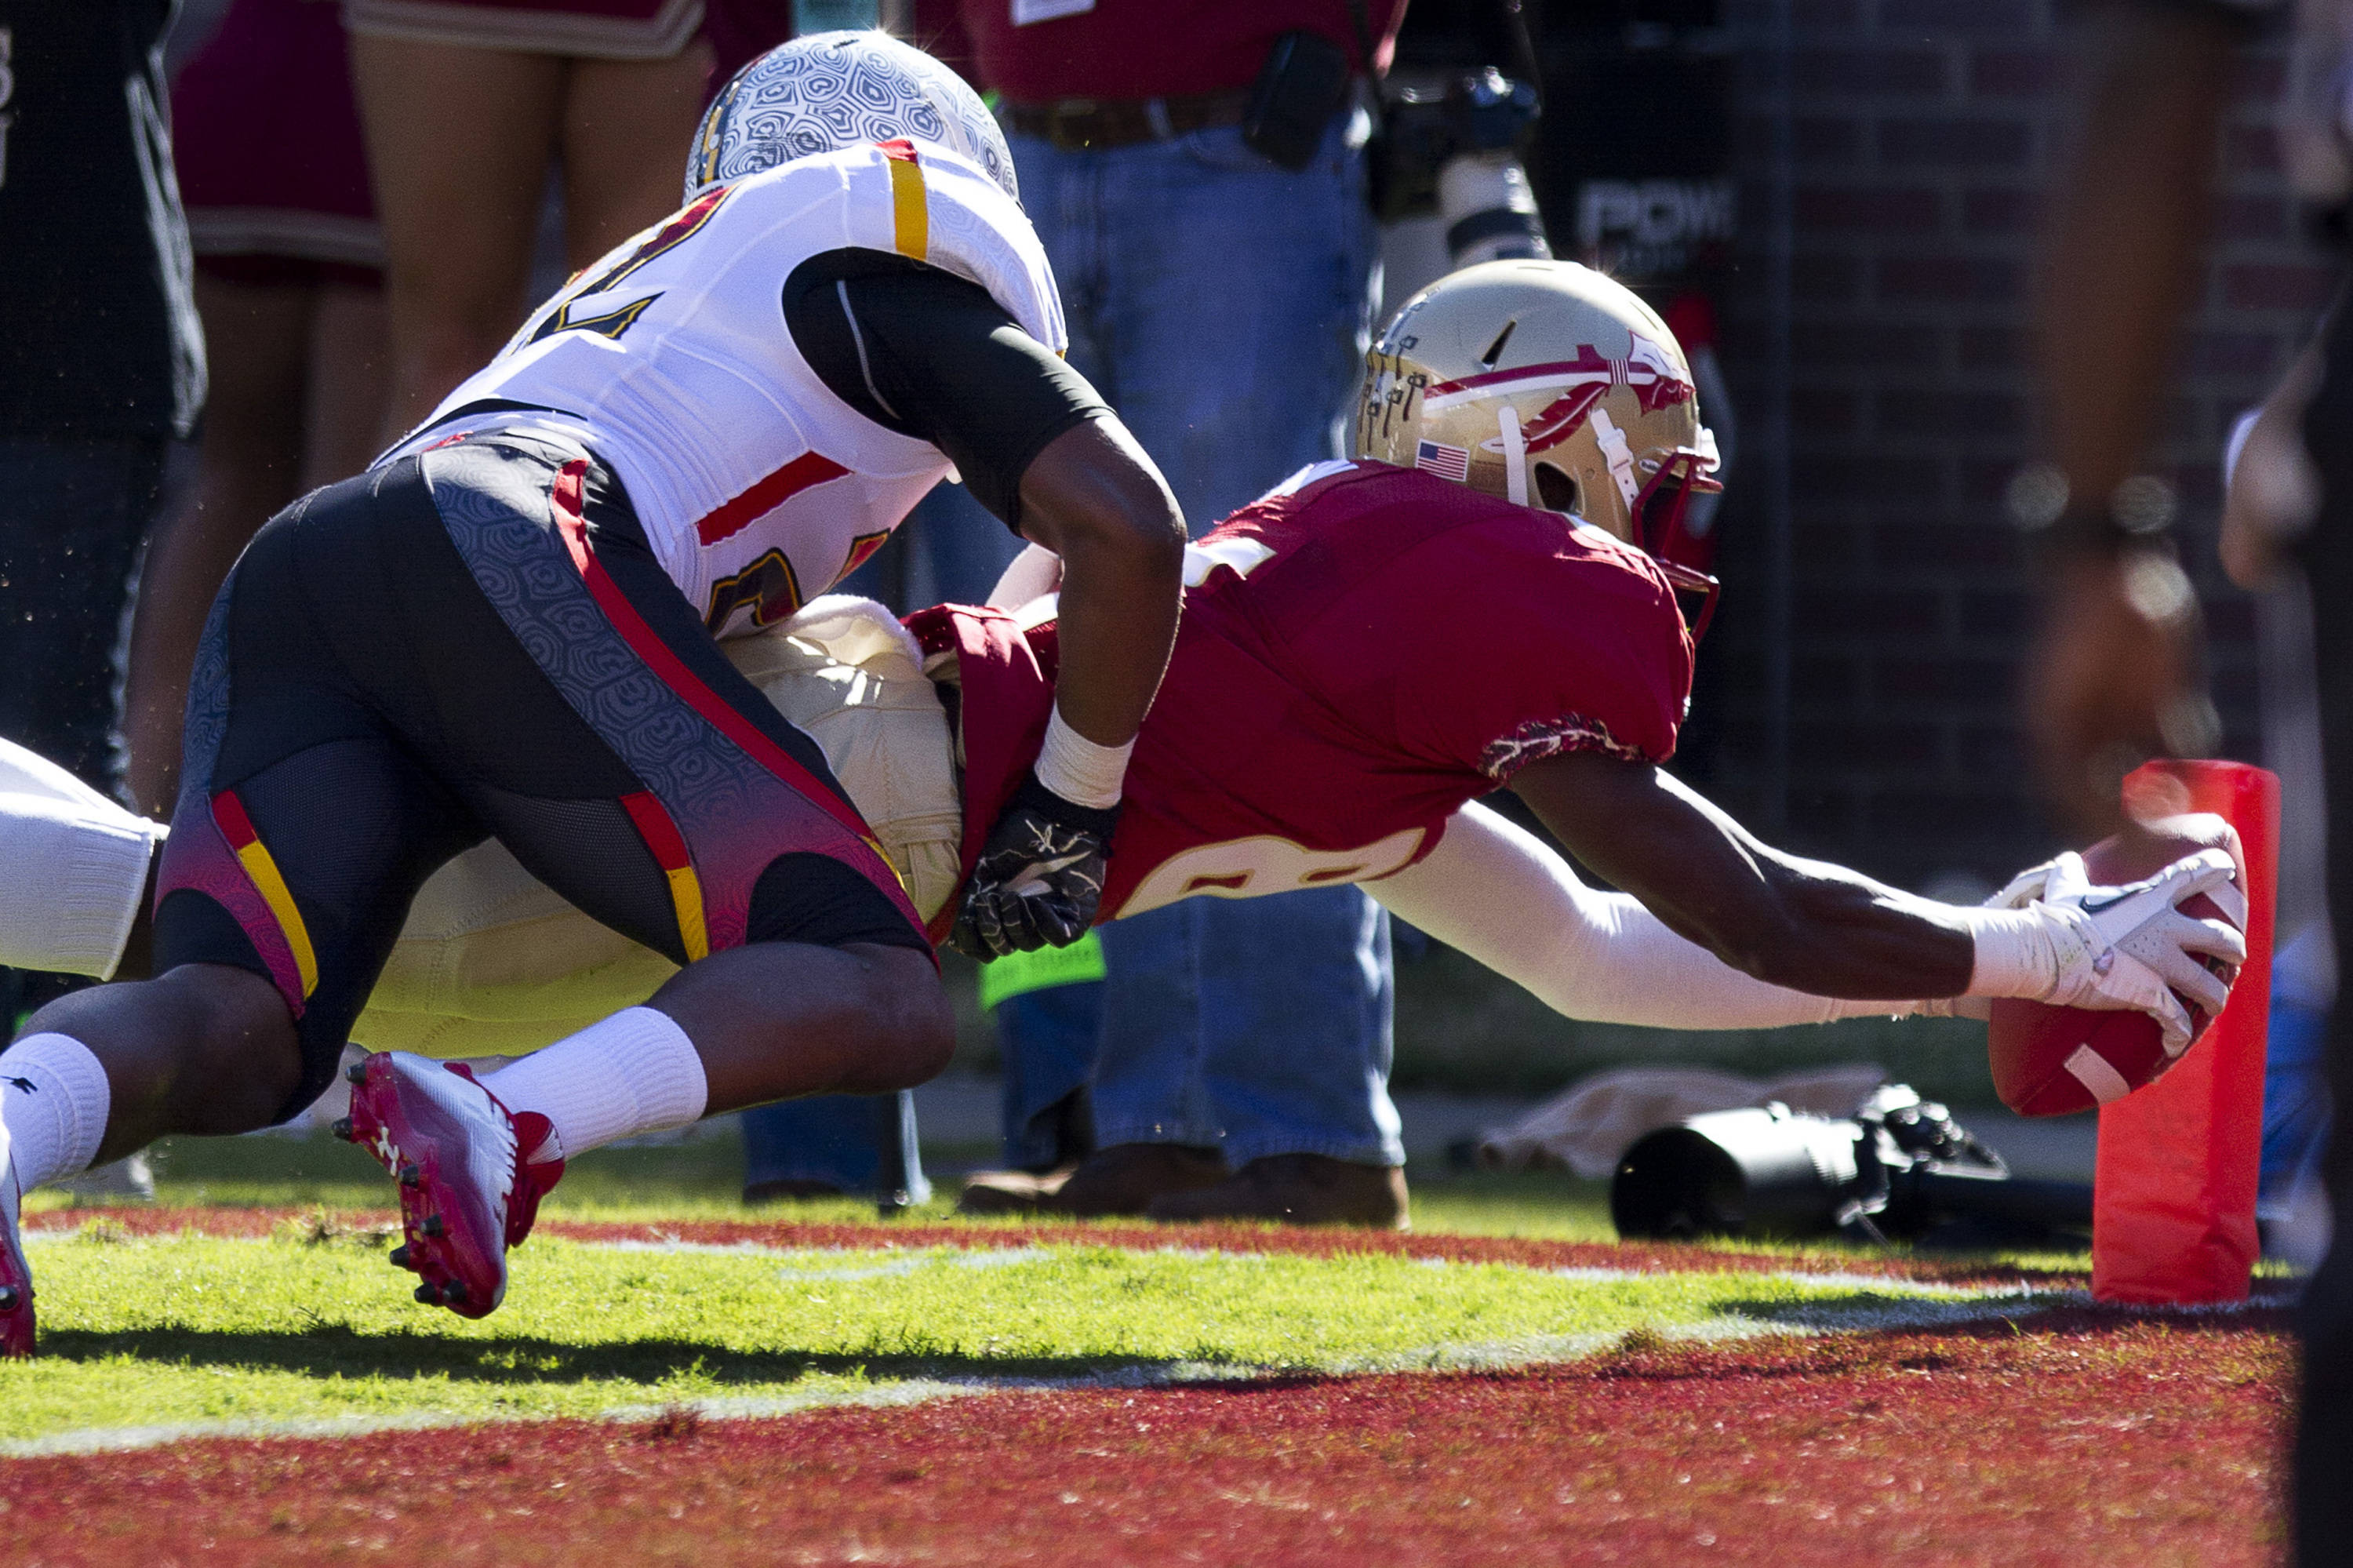 Kenny Shaw (81) dives into the endzone during the football game against Maryland in Tallahassee, Florida on October 22, 2011.